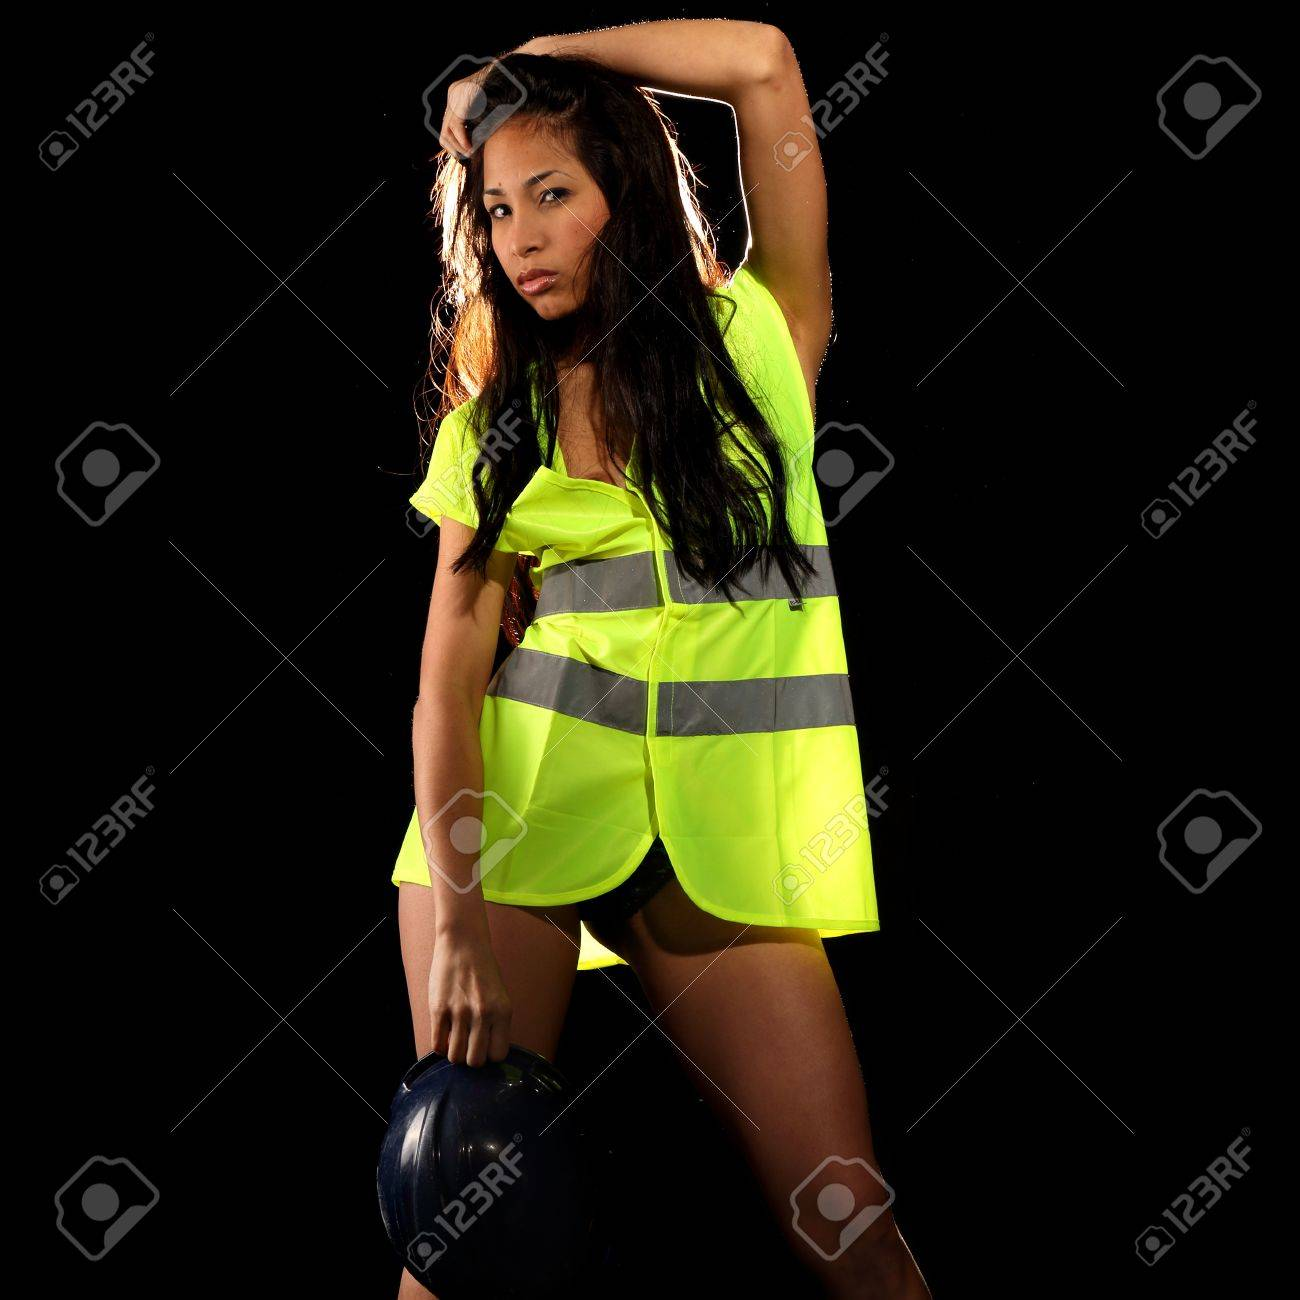 Very beautiful and sexy working woman wearing a safety or security jacket or vest and a helmet Stock Photo - 16968866